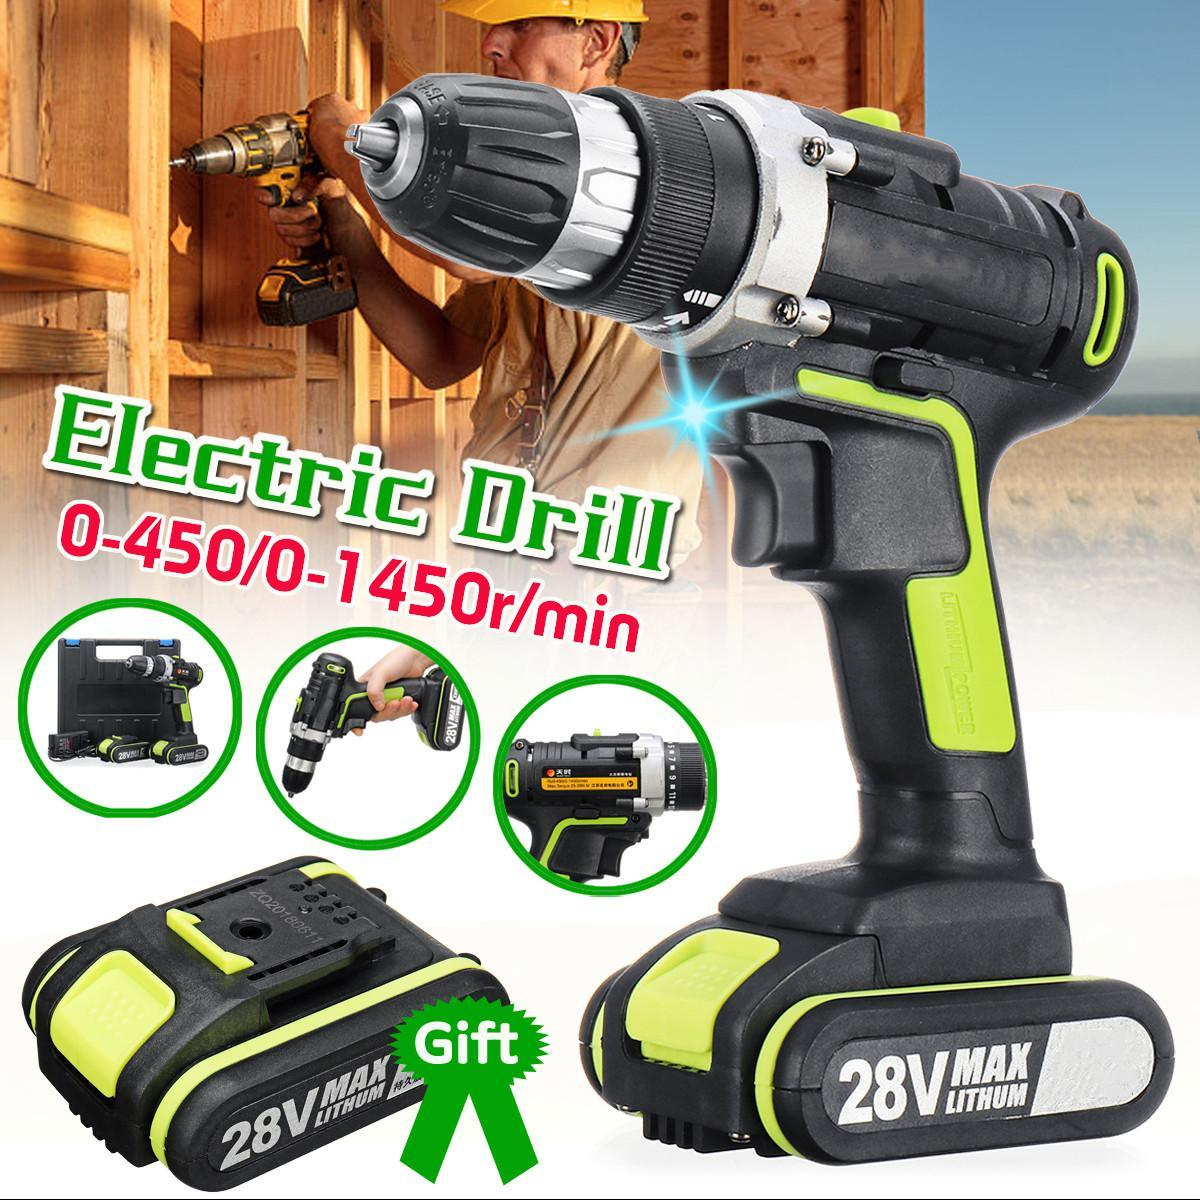 28V 28N m Cordless Hammer Drill LED Double 2-Speed Kit W/ 2 Li-ion Battery  10MM